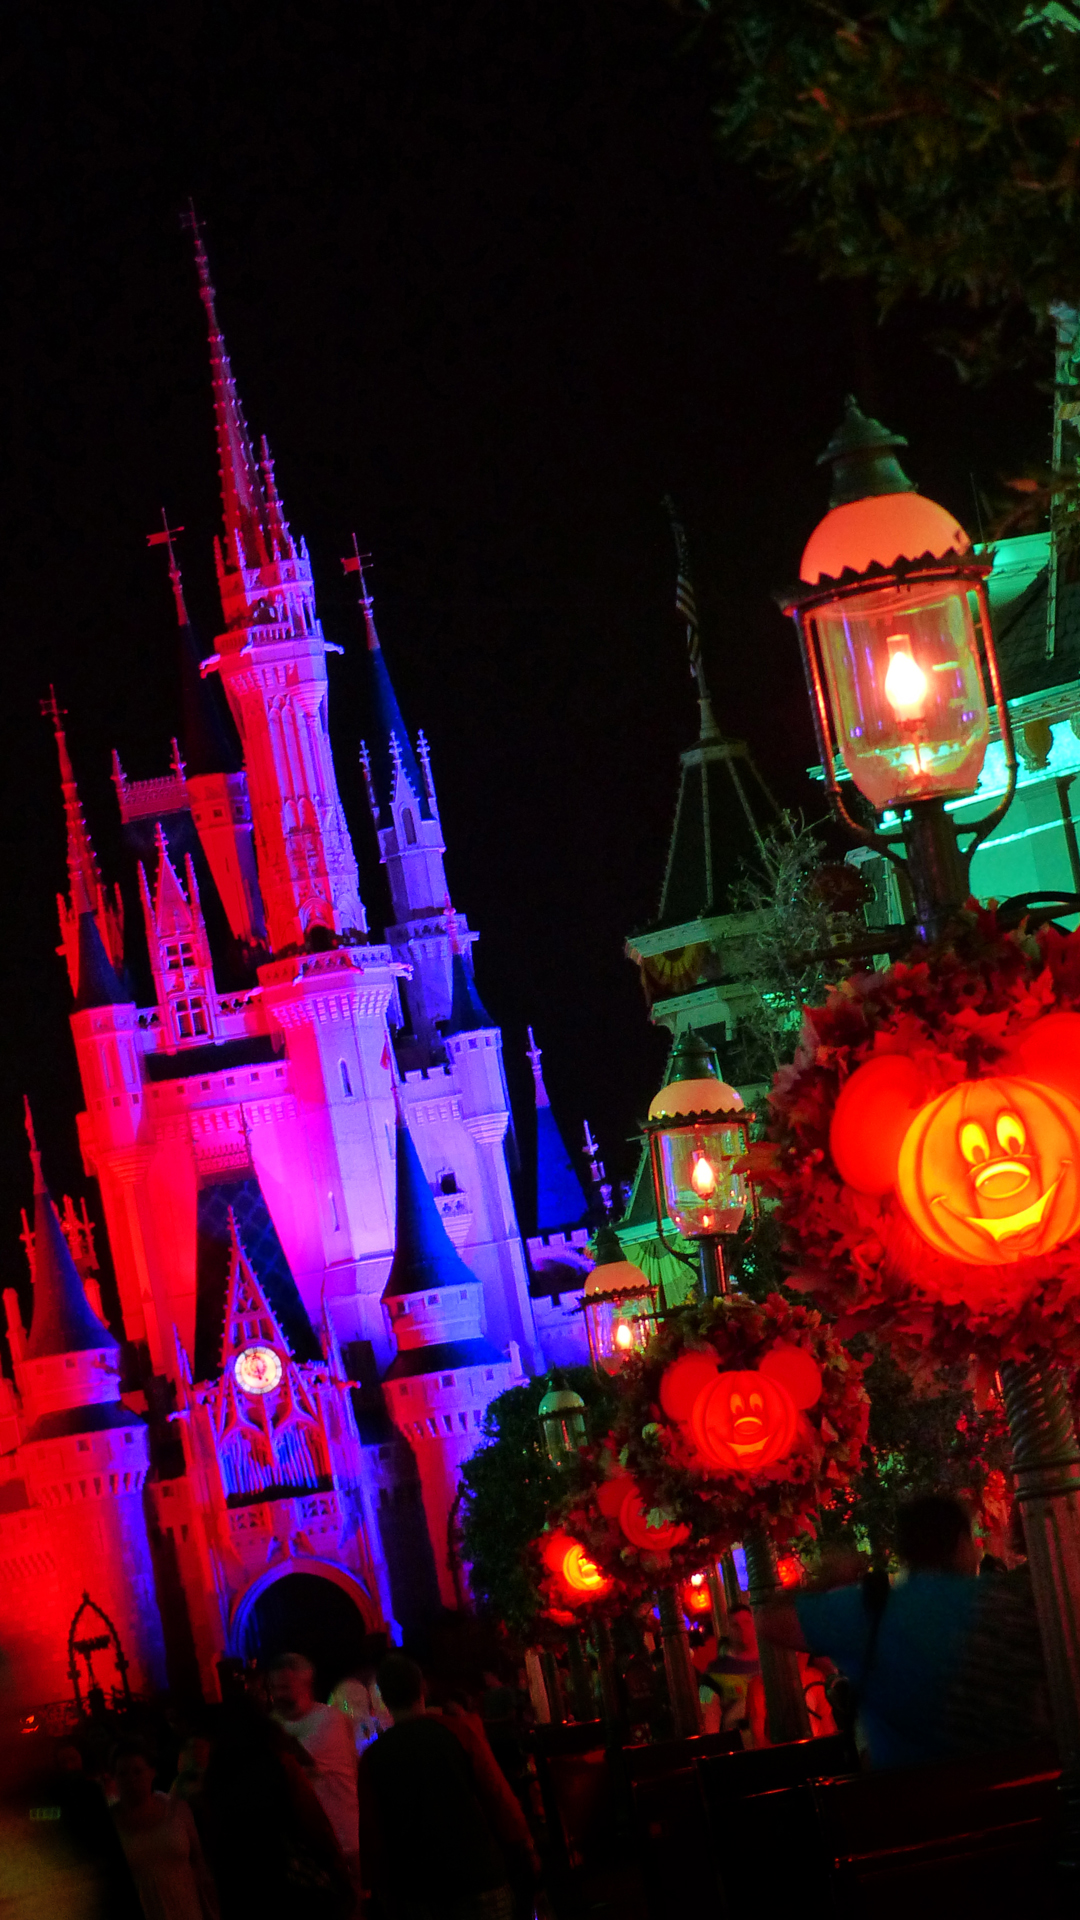 Most Inspiring Wallpaper Halloween Neon - Mickeys-Not-So-Scary-Halloween-Party-Disney-iPhone-Wallpaper-2-7  Pic_97913.jpg